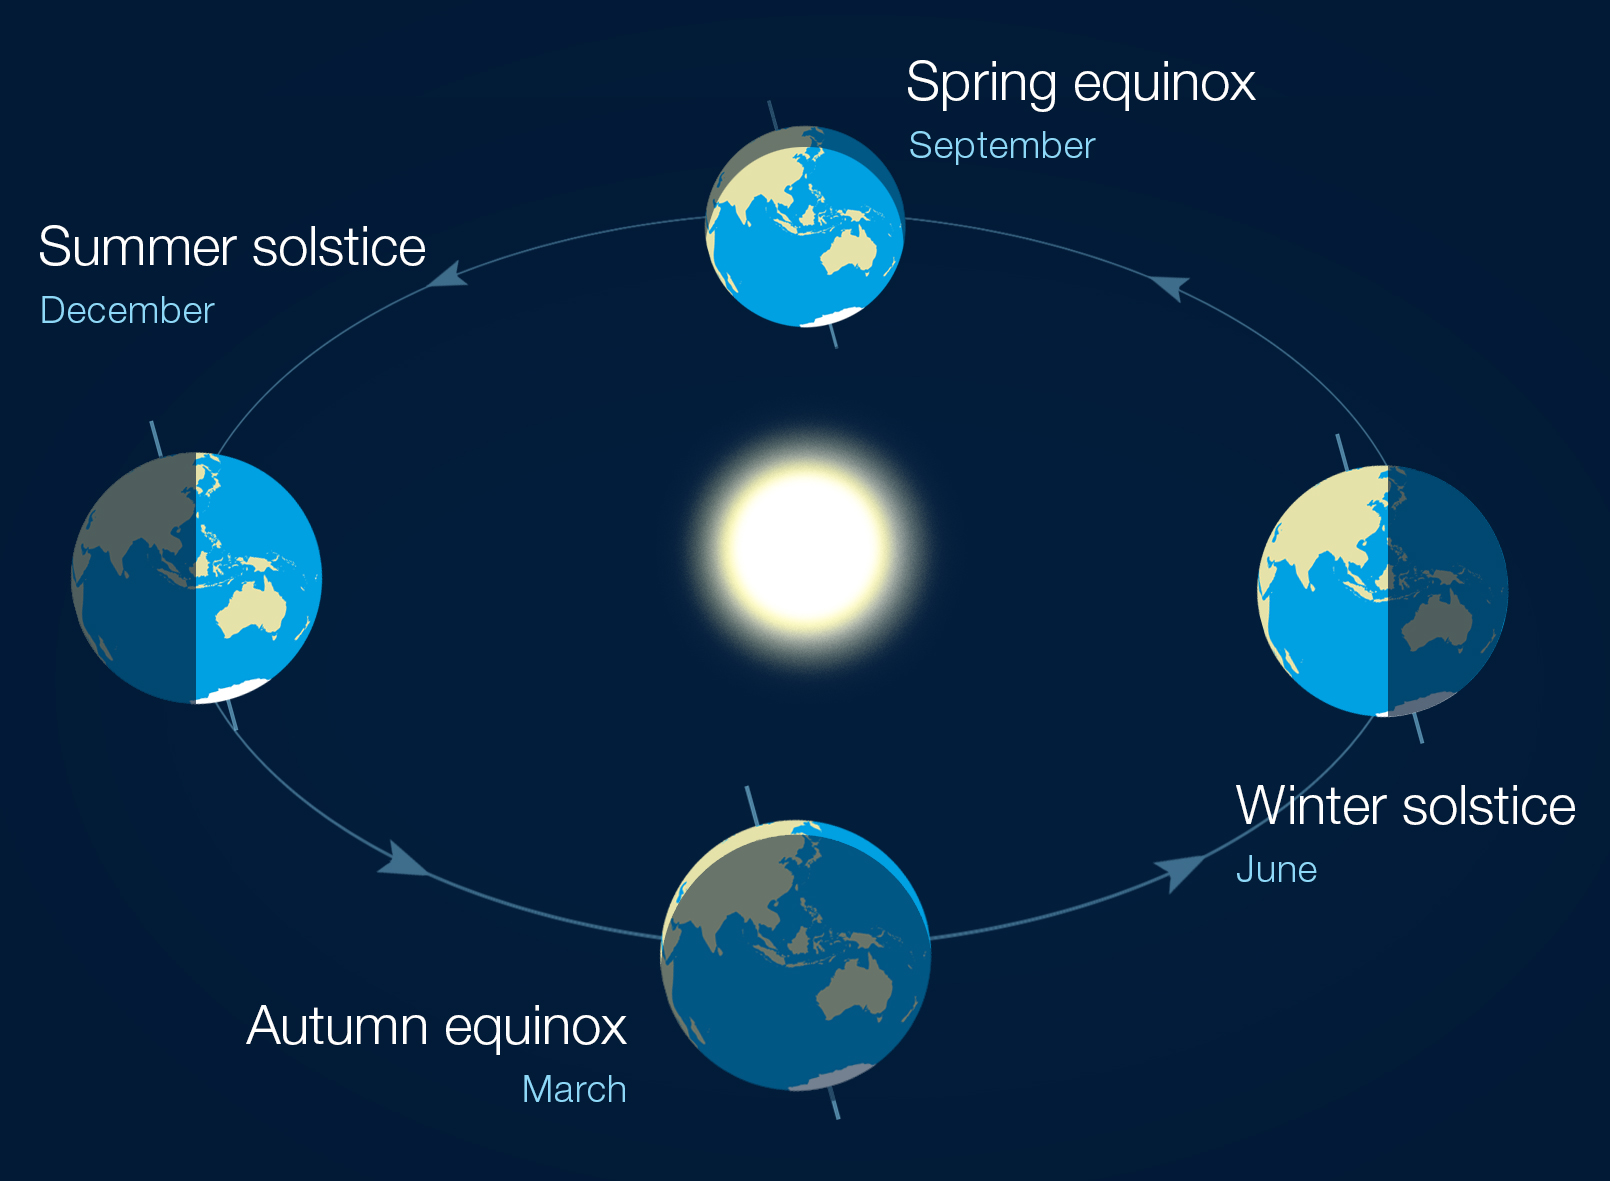 diagram of summer and winter solstice electrical wiring standards solstices equinoxes the reasons for seasons